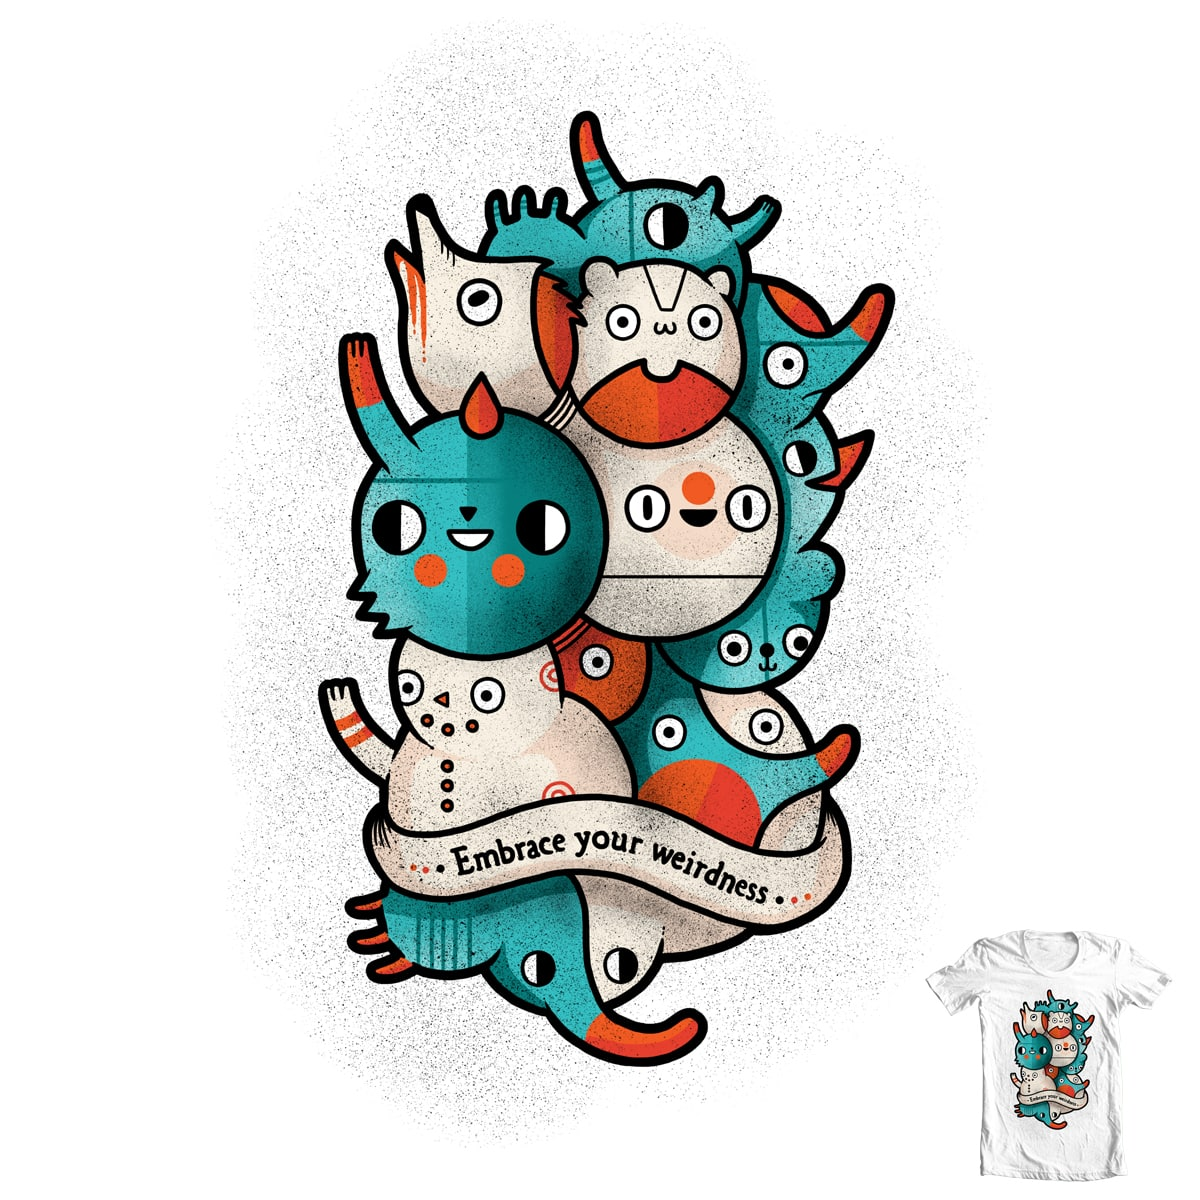 Embrace your weirdness by randyotter3000 on Threadless